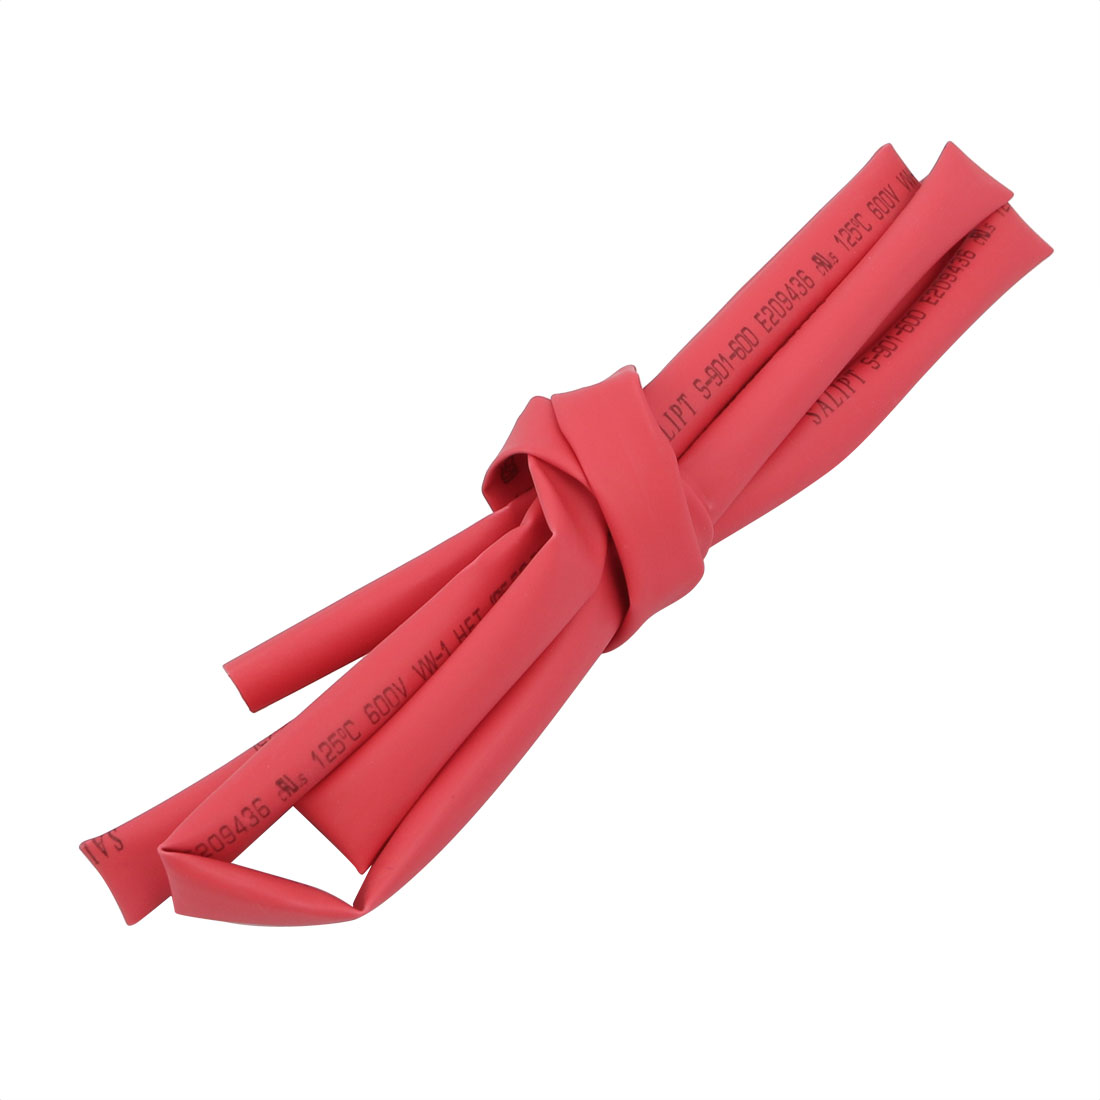 1M Long 5.5mm Inner Dia. Polyolefin Heat Shrinkable Tube Red for Wire Repairing